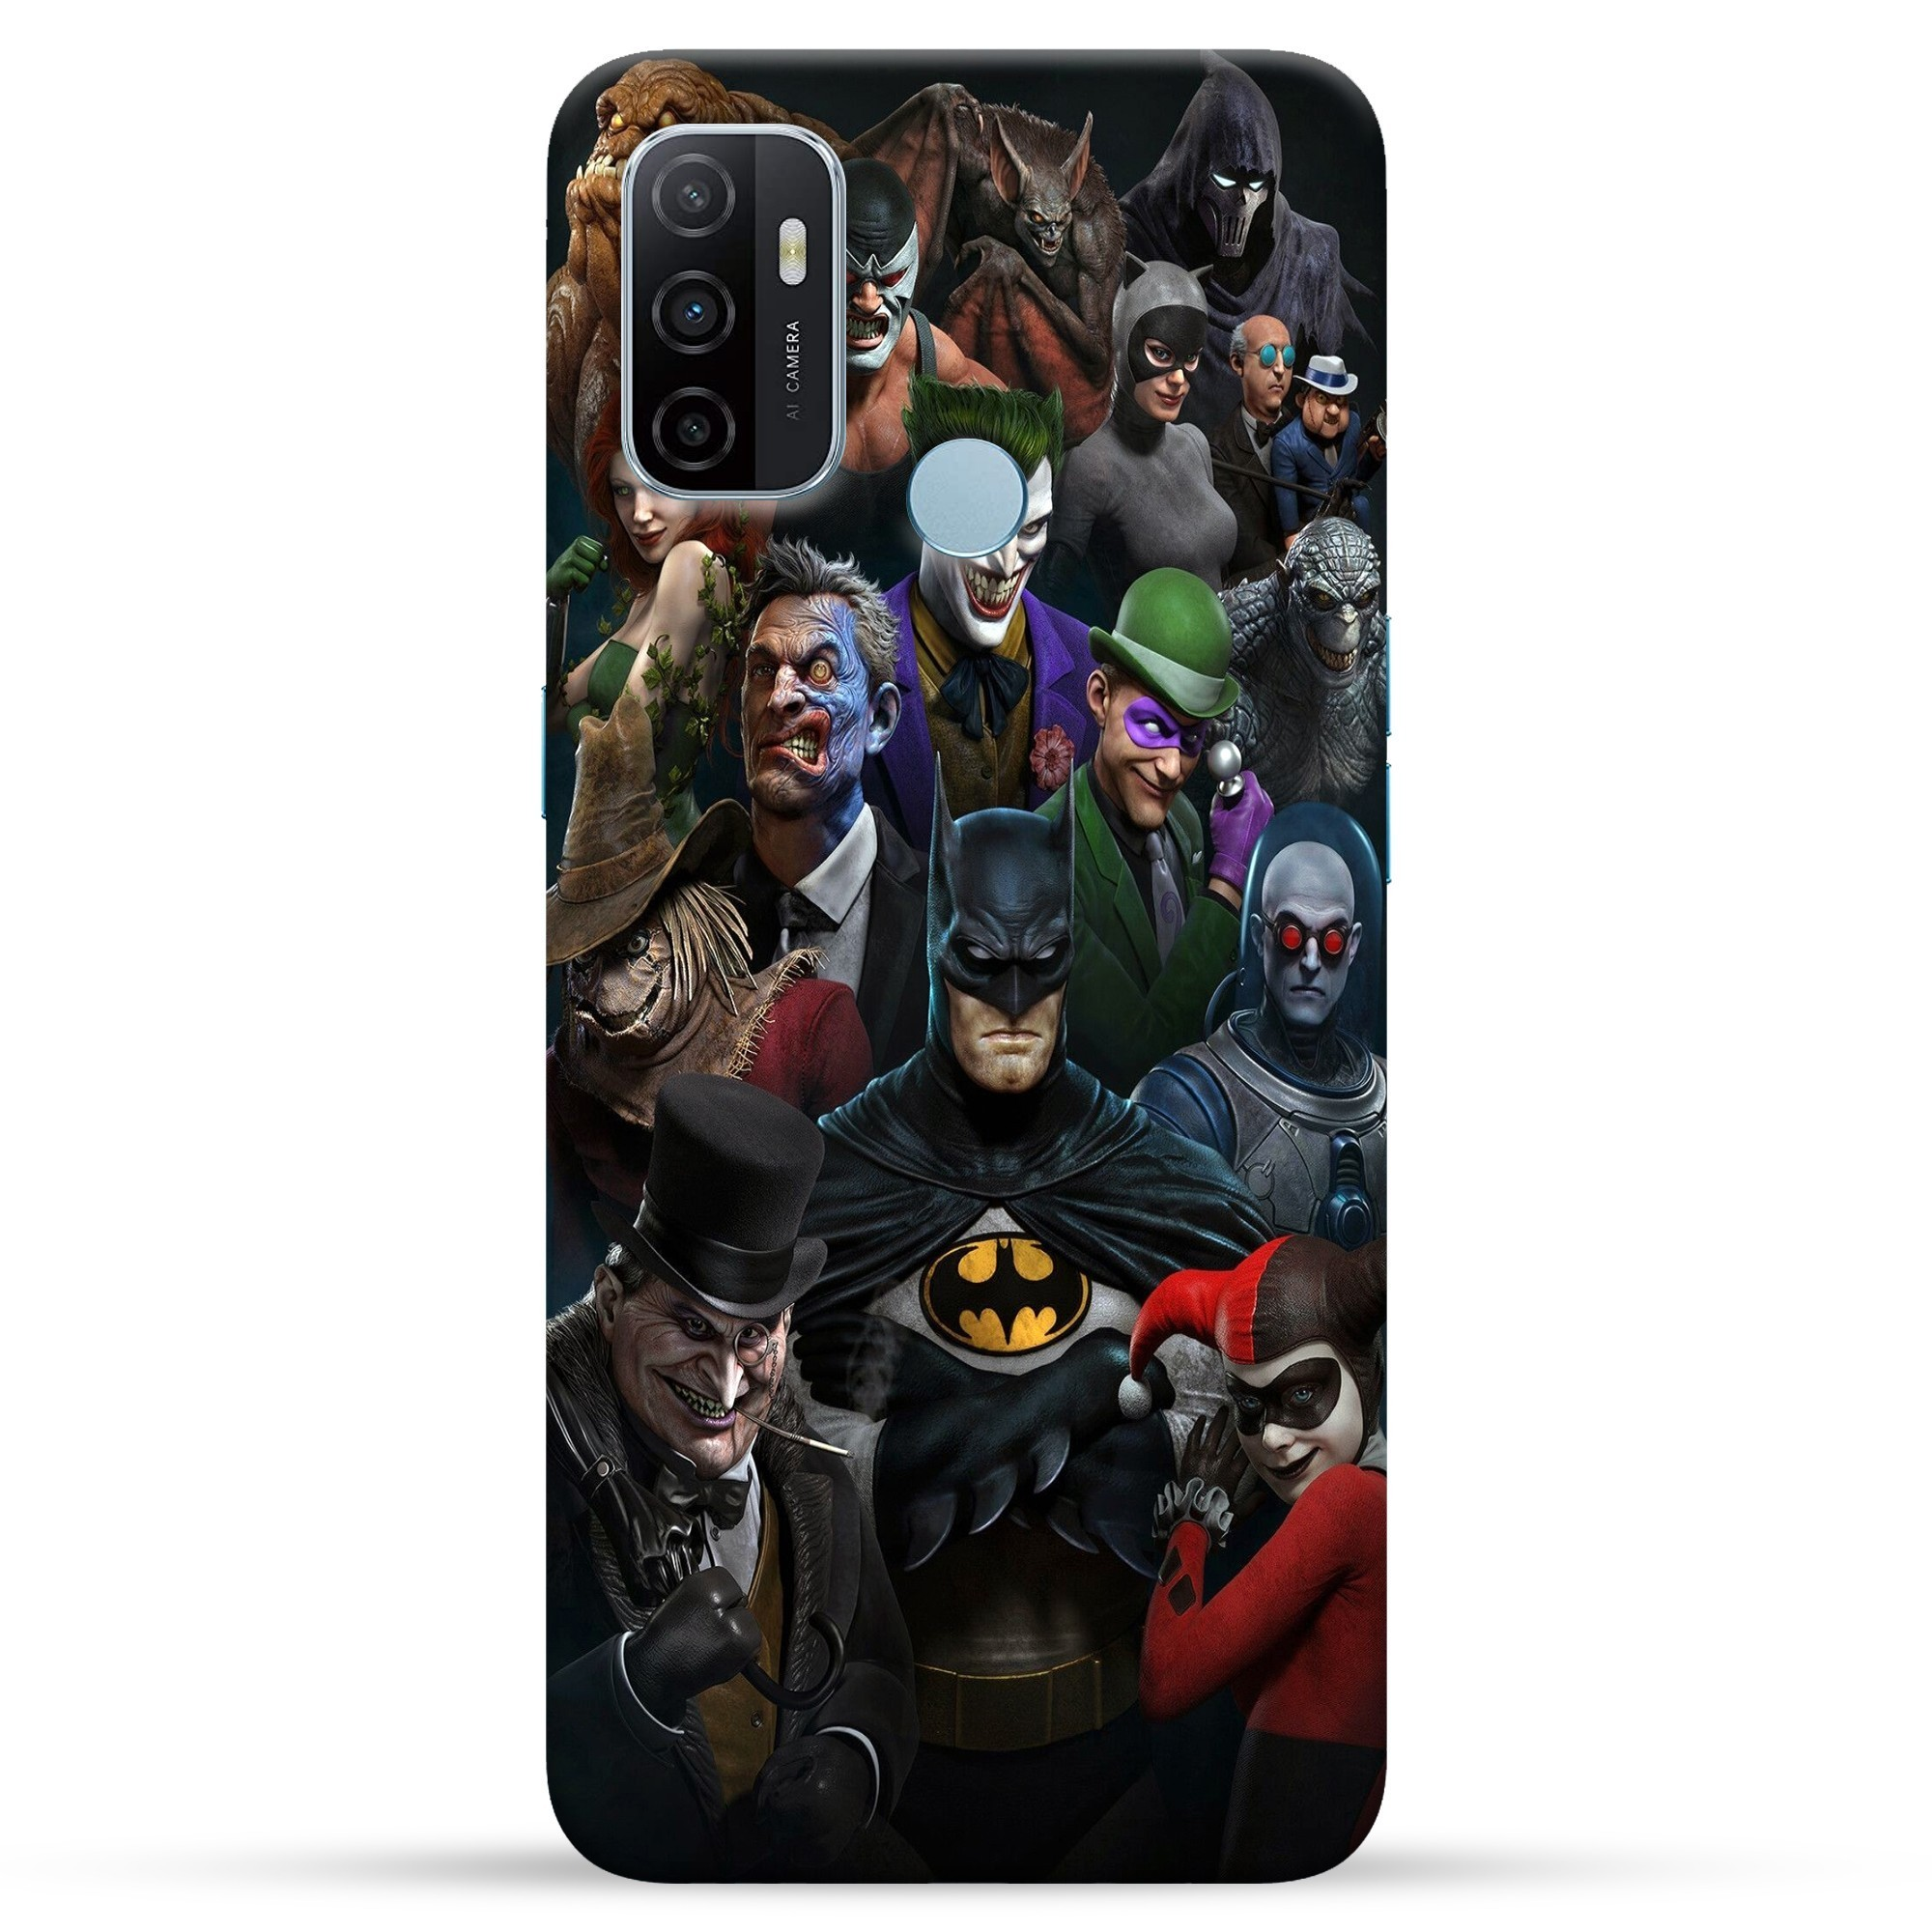 Shop Oppo A53 Back Covers  Cases at CustomEra